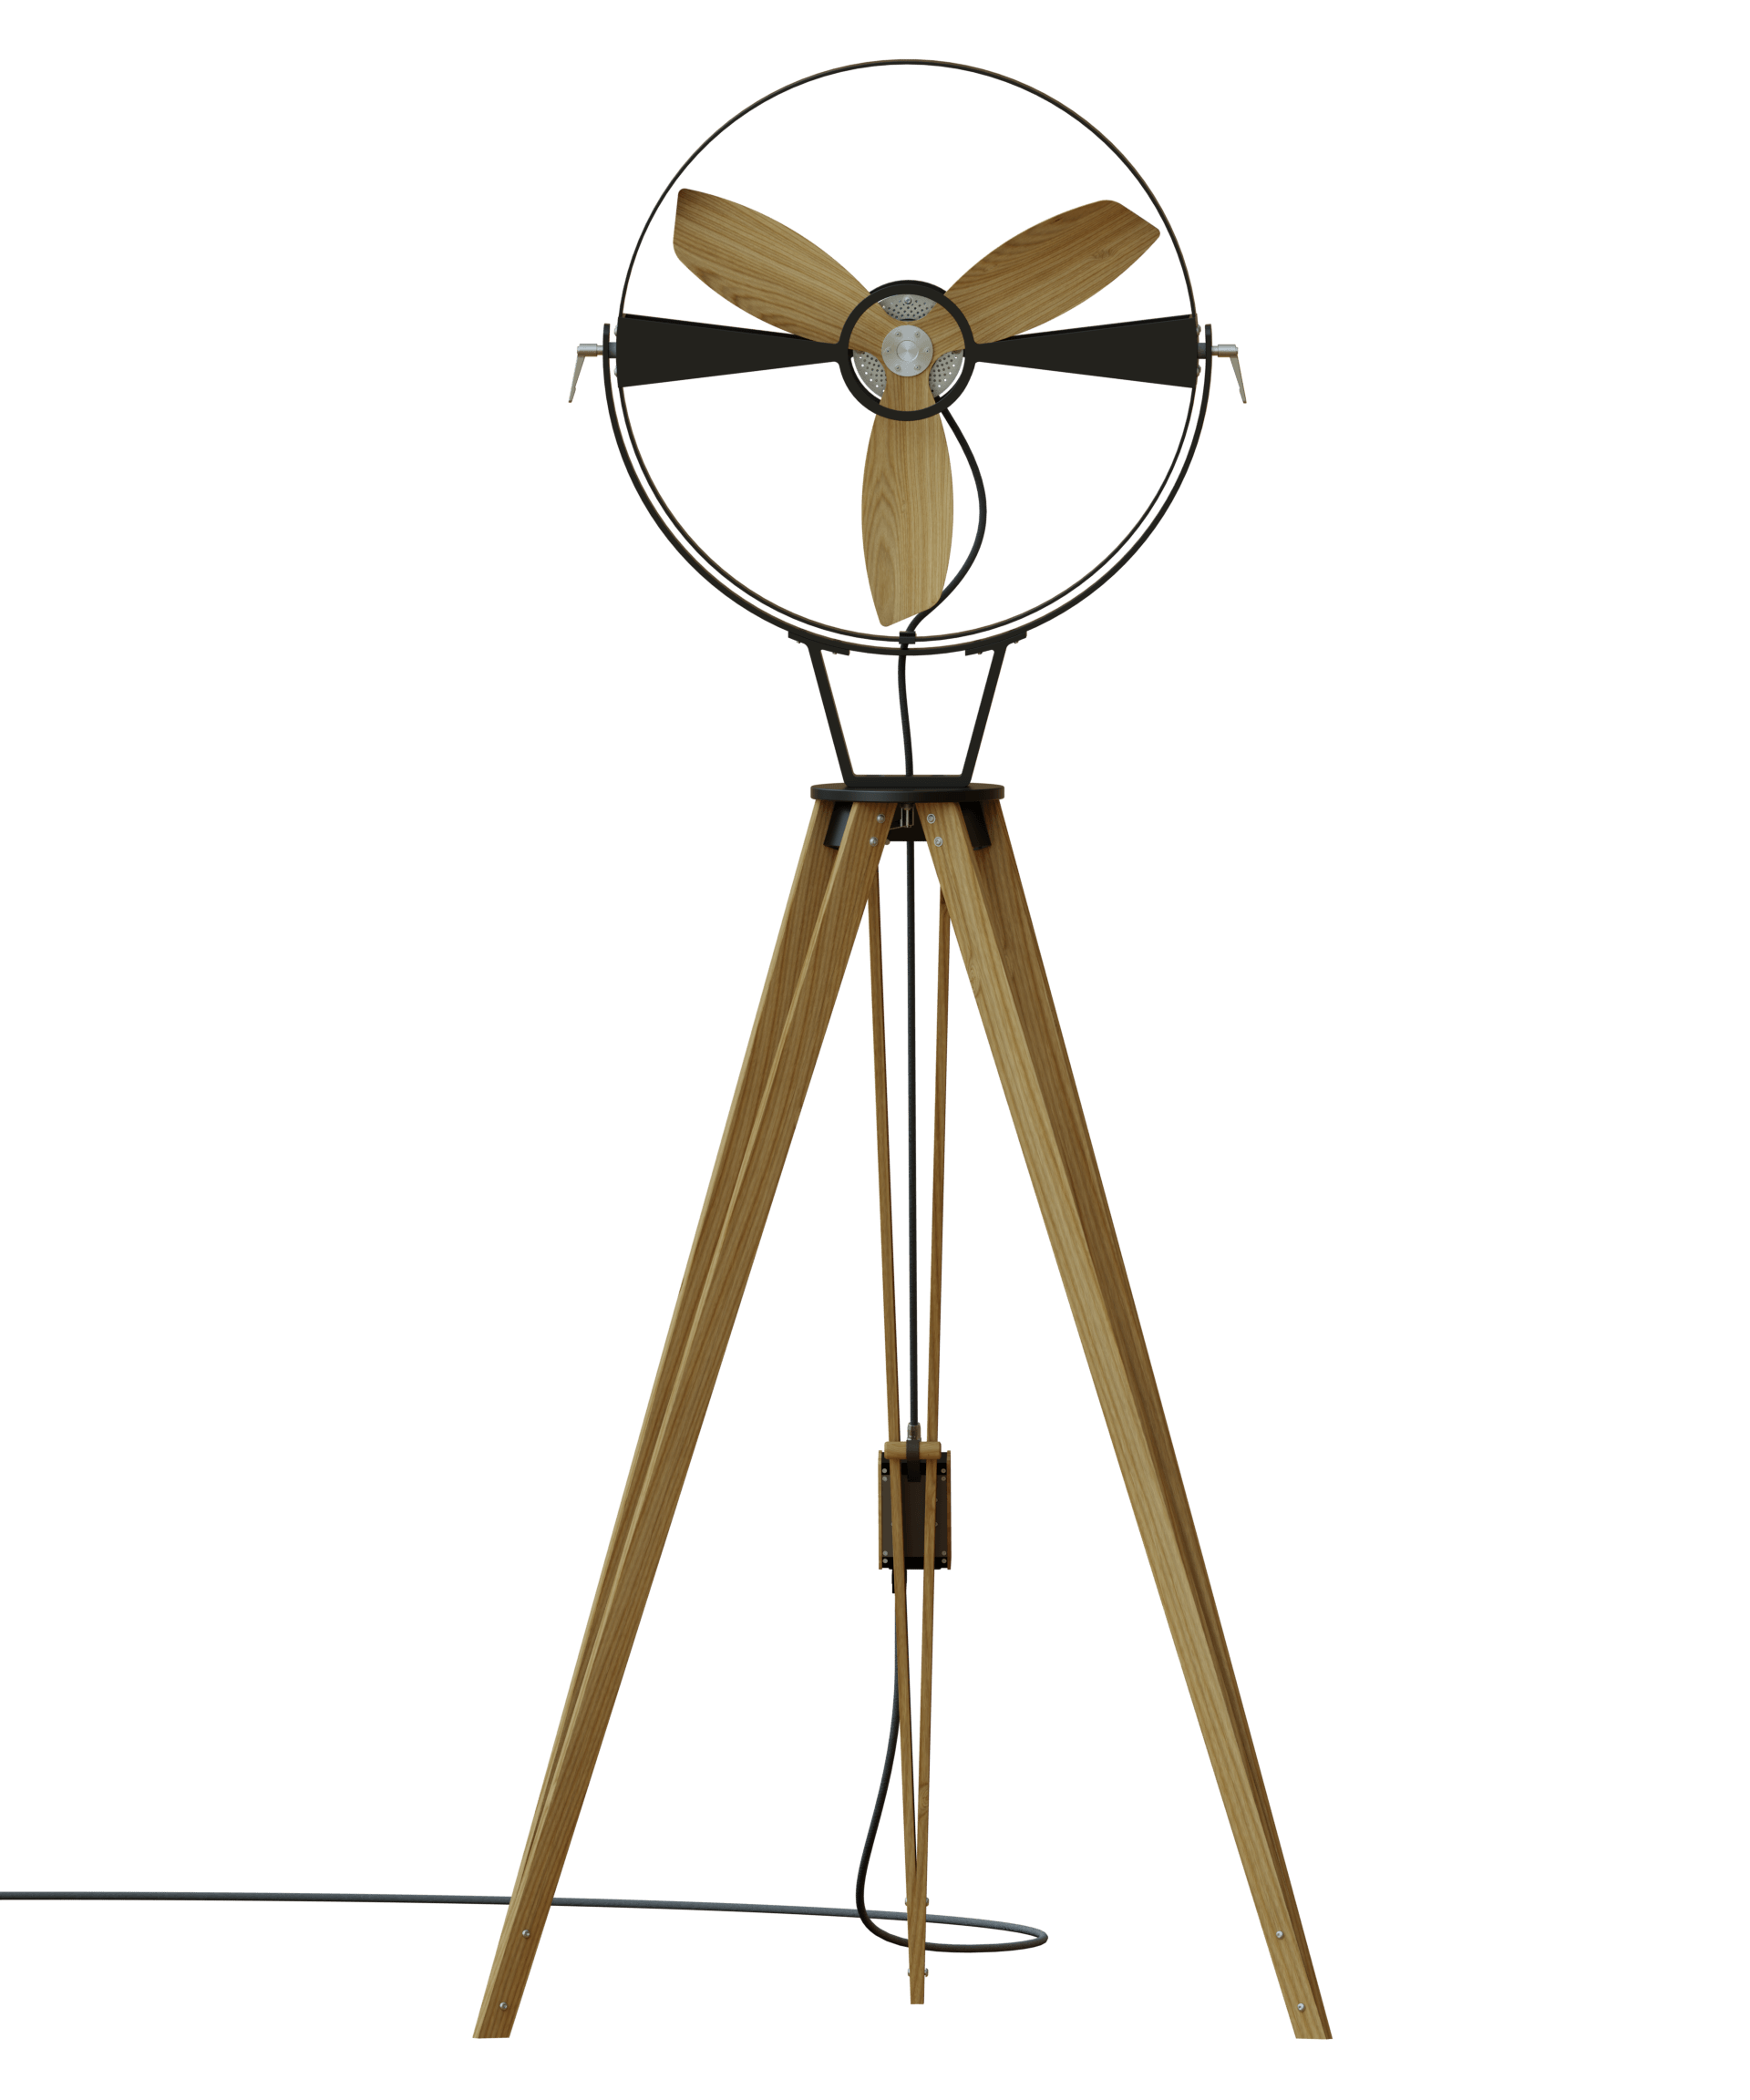 AURA Black - TTATO´s wooden tripod fan in front view